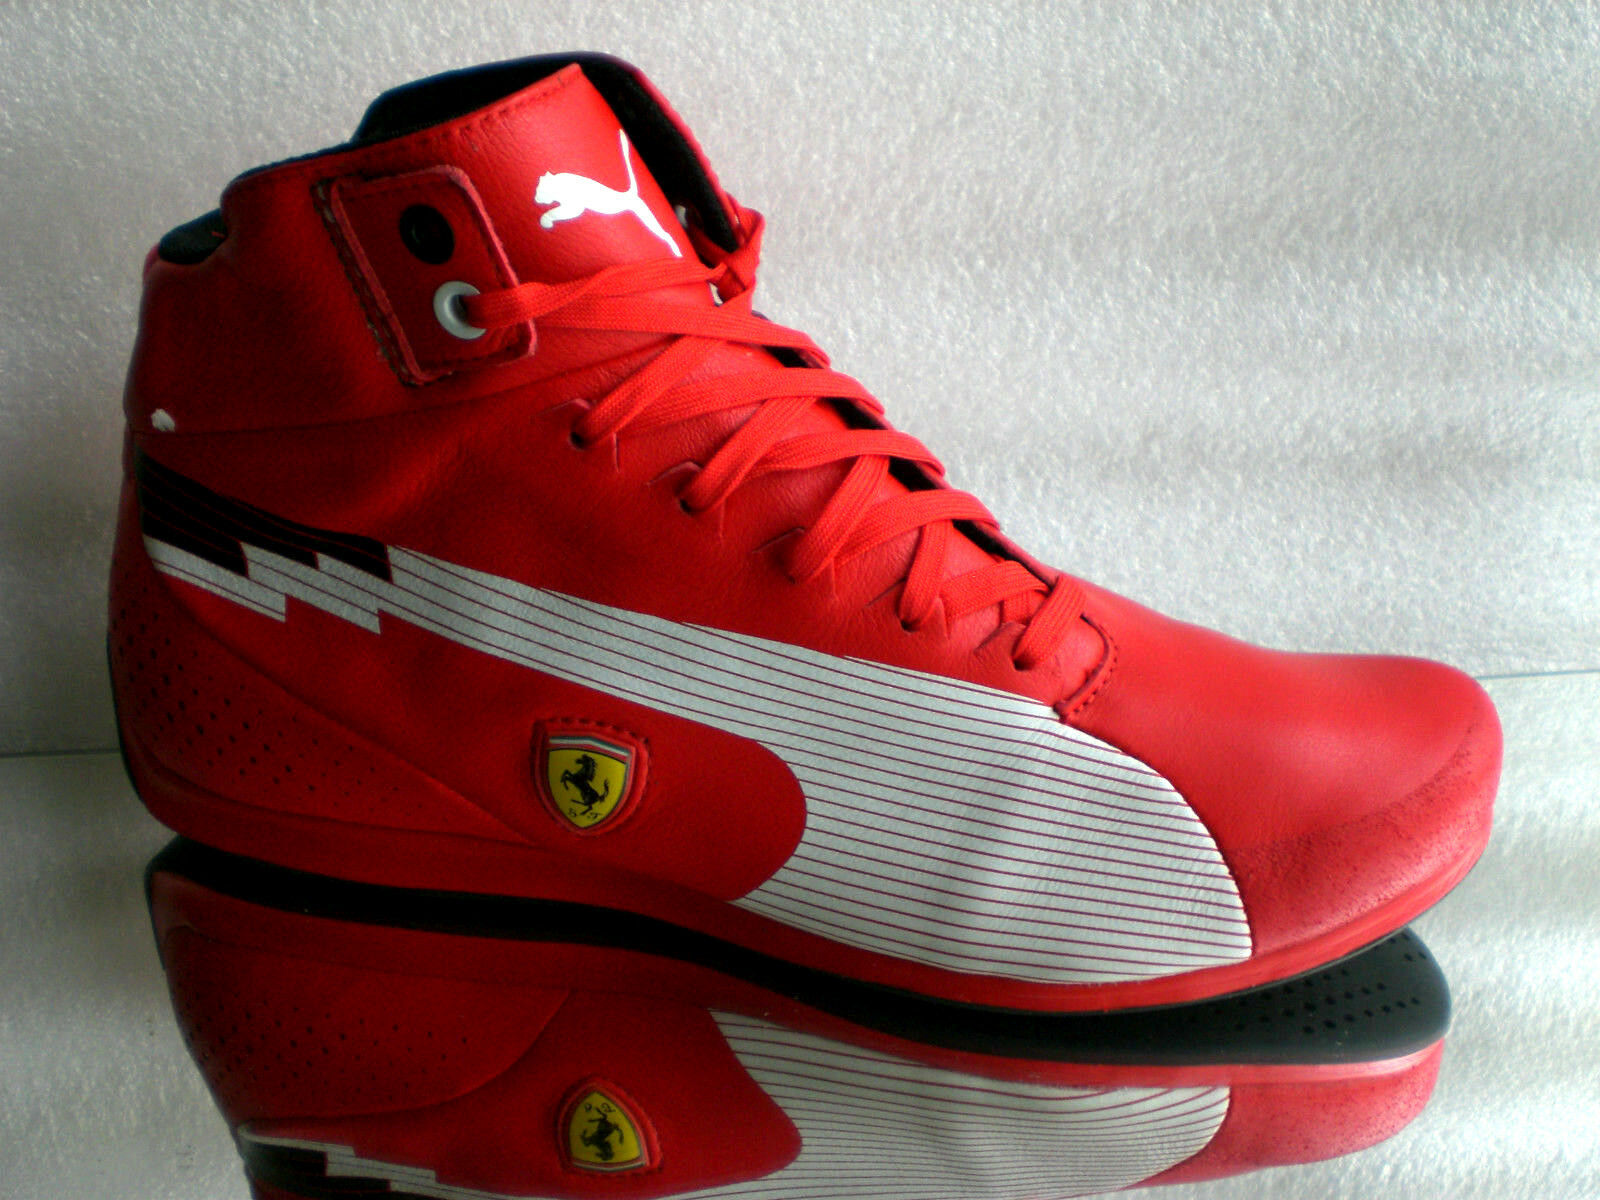 Original Puma Ferrari Gr: Speed Mid Men Sneaker TurnLaufschuh Stiefel Gr: Ferrari 39-42 +Bag be8a4f